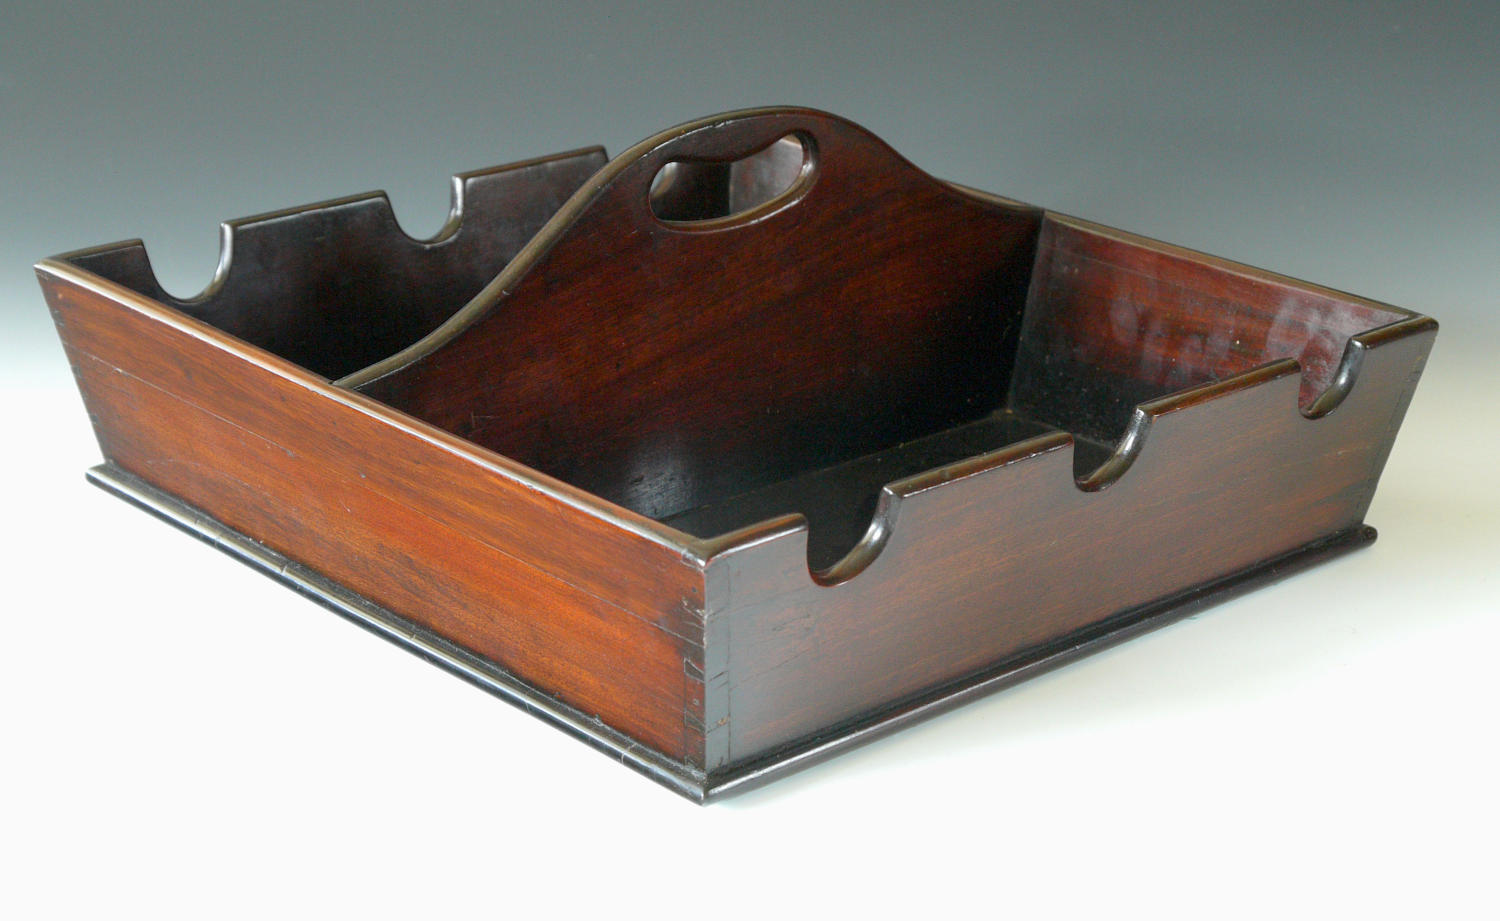 5032 An unusual mahogany bottle carrier